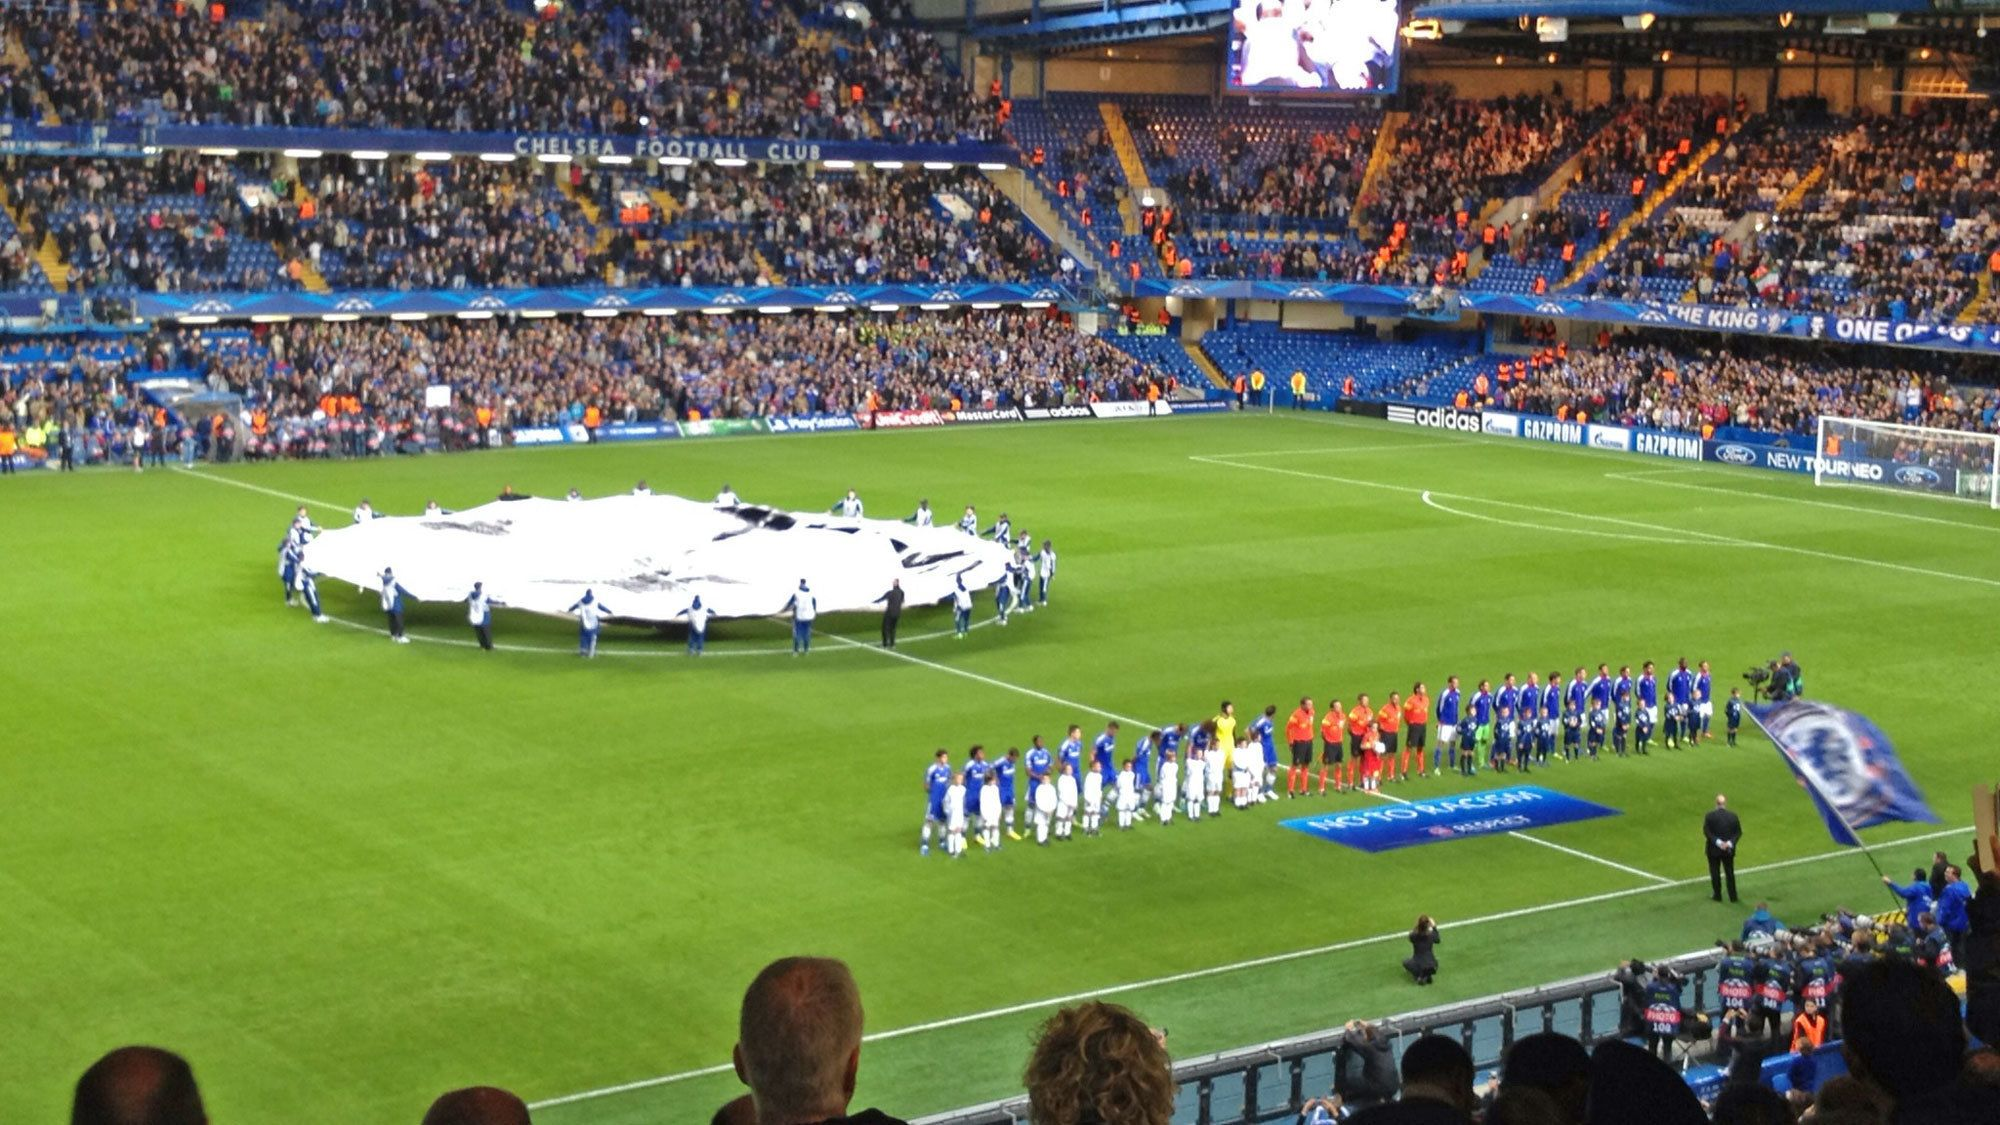 Beginning of match of London Chelsea Football Match at Stamford Bridge Stadium